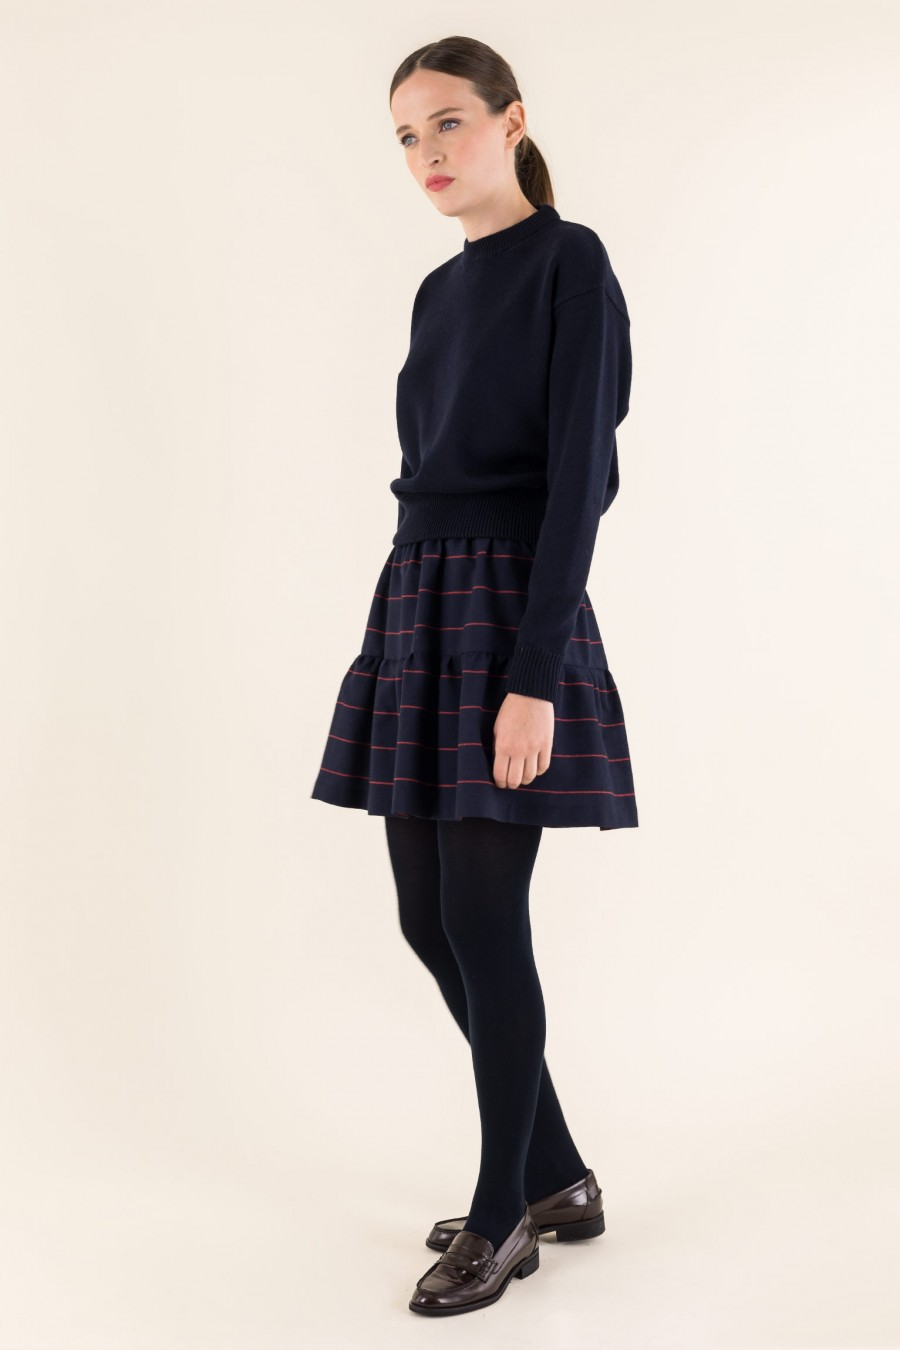 Casual winter outfit with skirt